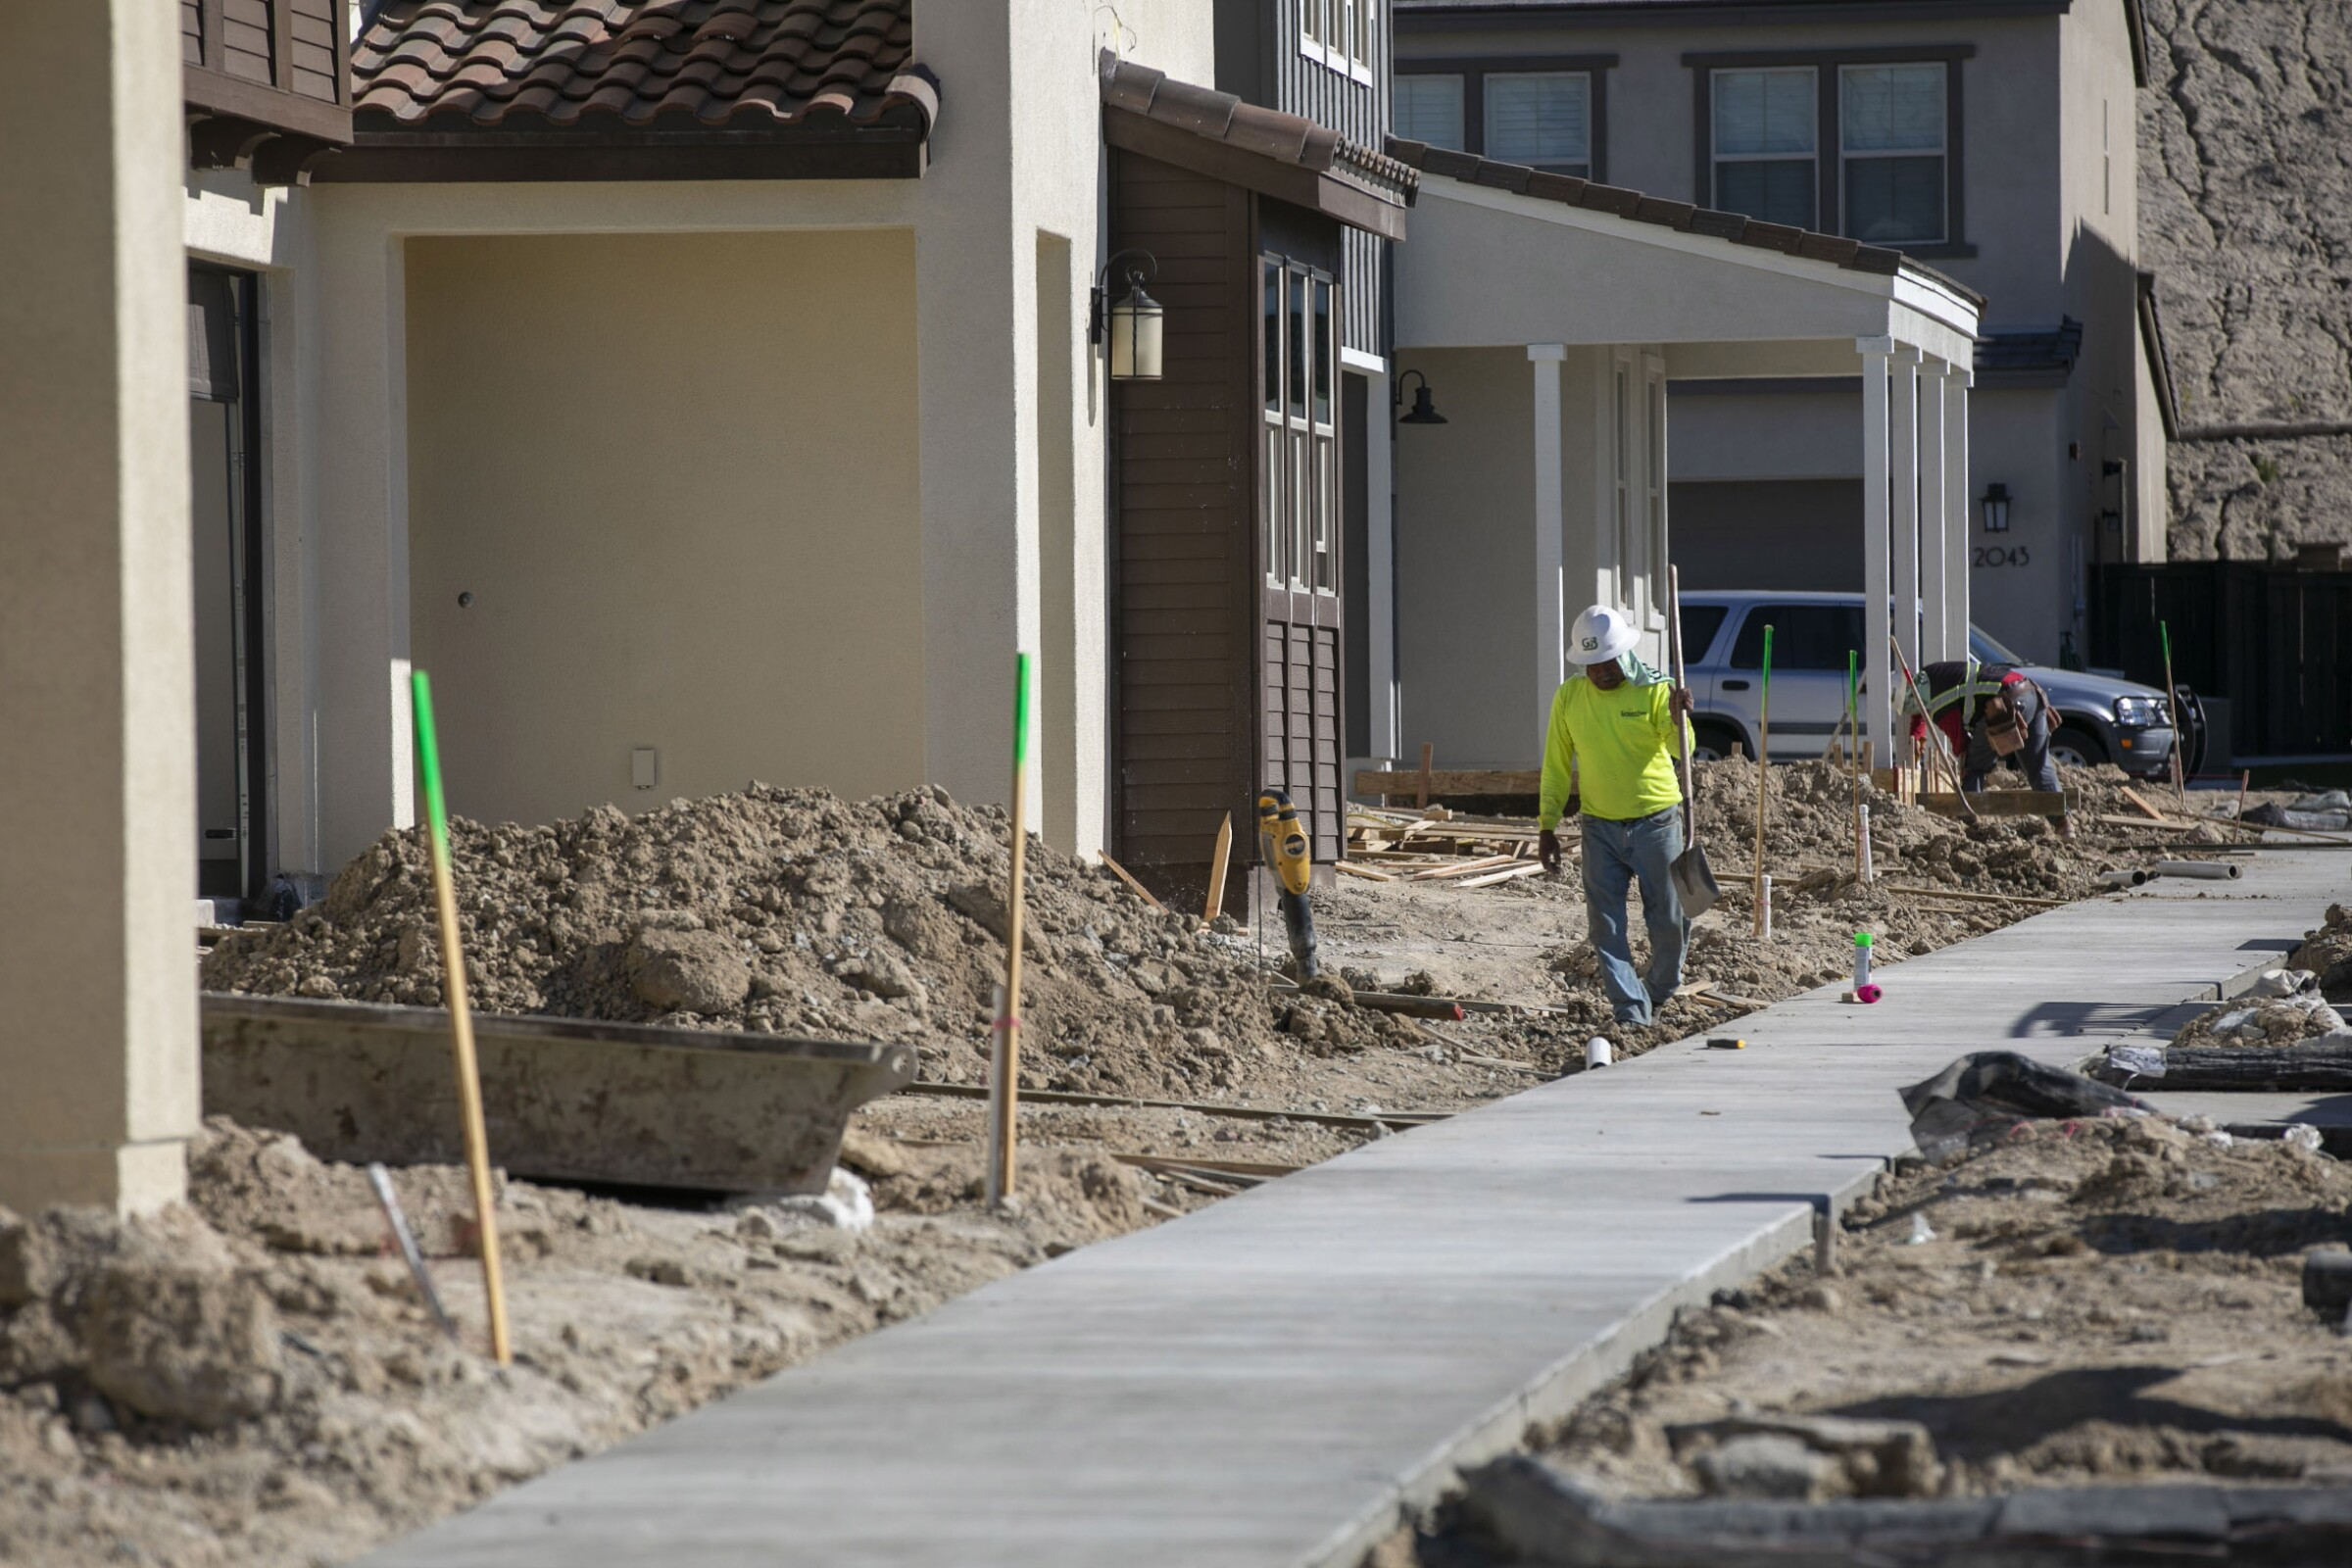 New single family homes under construction in the Seville project in Chula Vista in January.